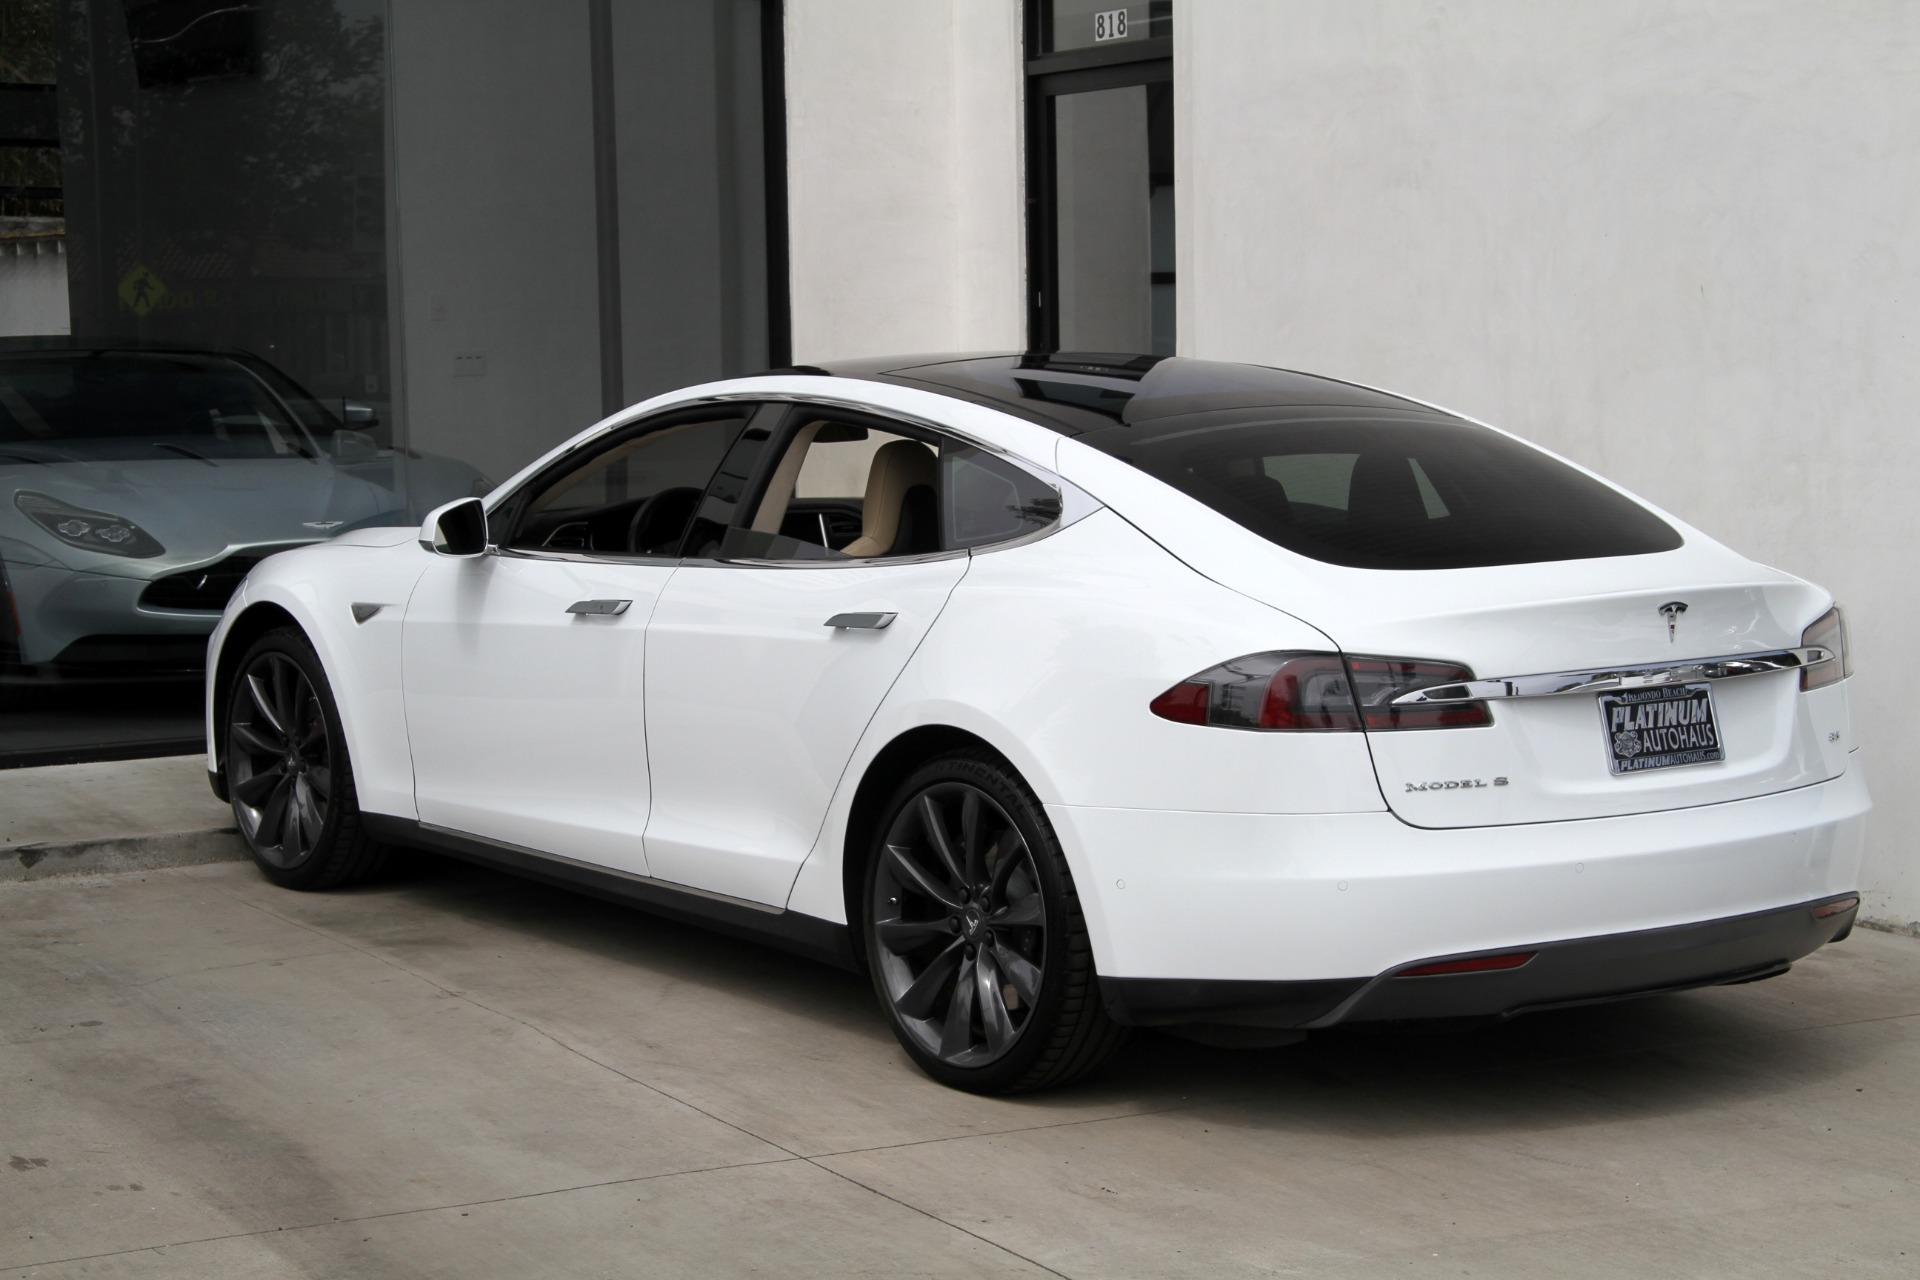 2015 tesla model s 85 autopilot stock 6216 for sale near redondo beach ca ca tesla. Black Bedroom Furniture Sets. Home Design Ideas